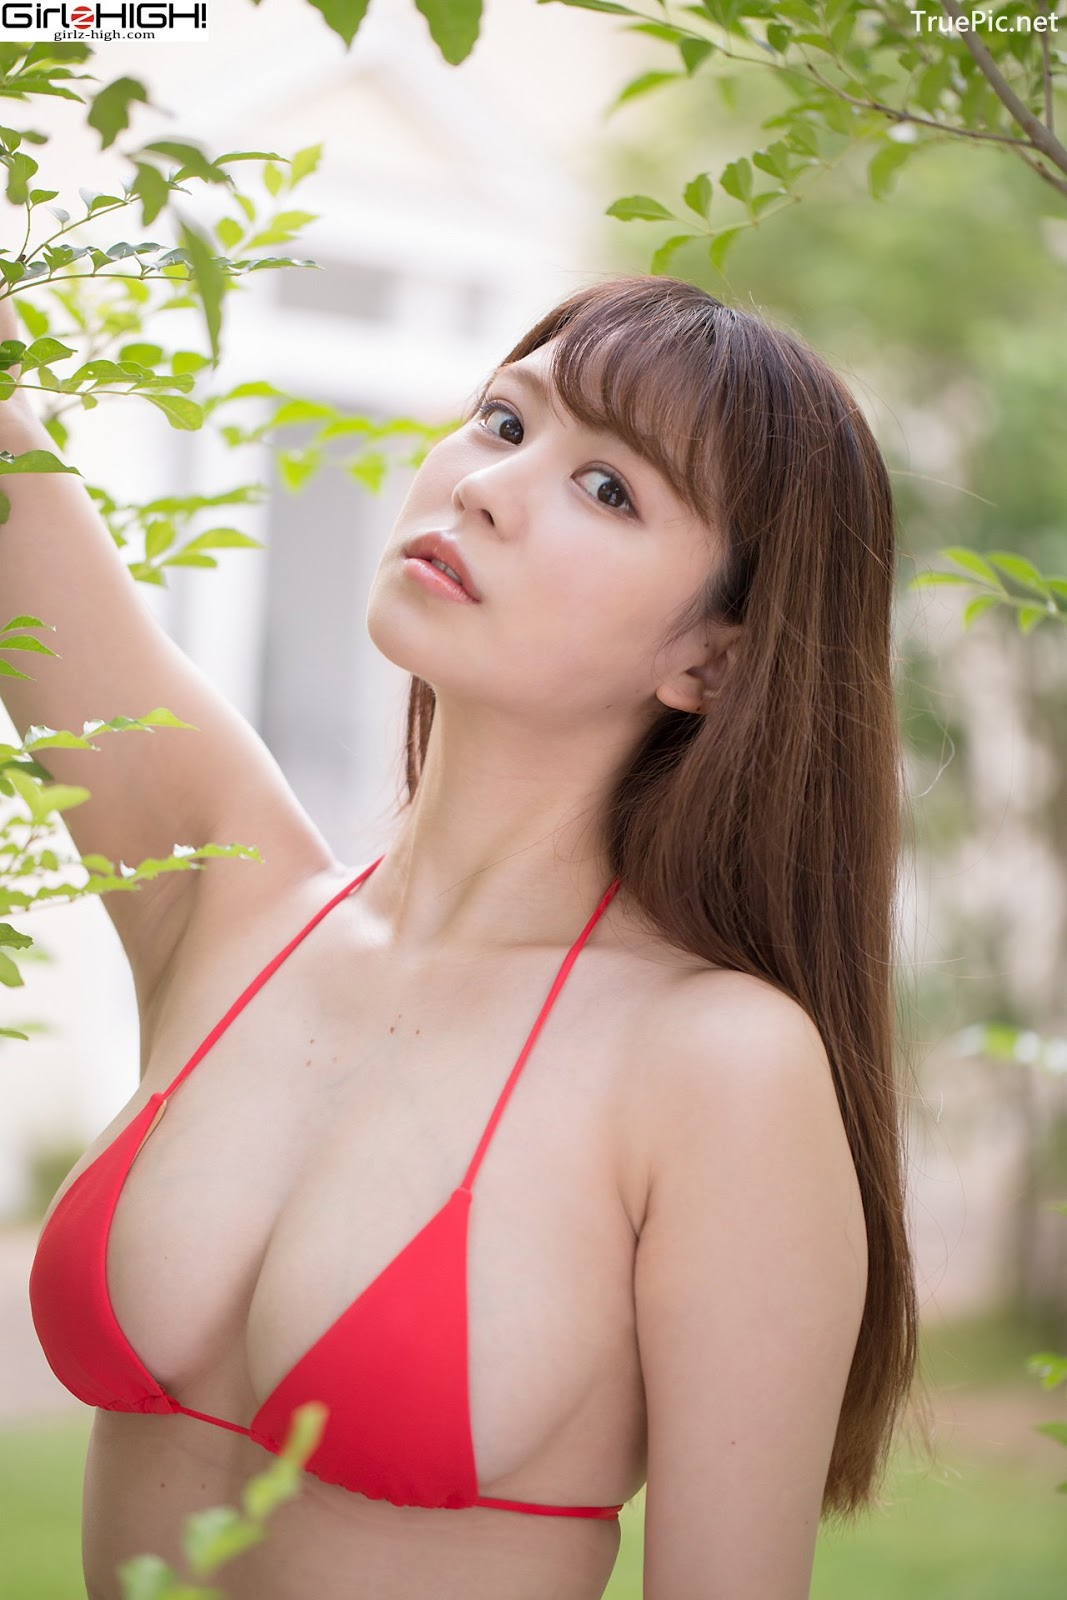 Image Japanese Gravure Idol - Kasumi Yoshinaga - Girlz High Album - TruePic.net - Picture-8